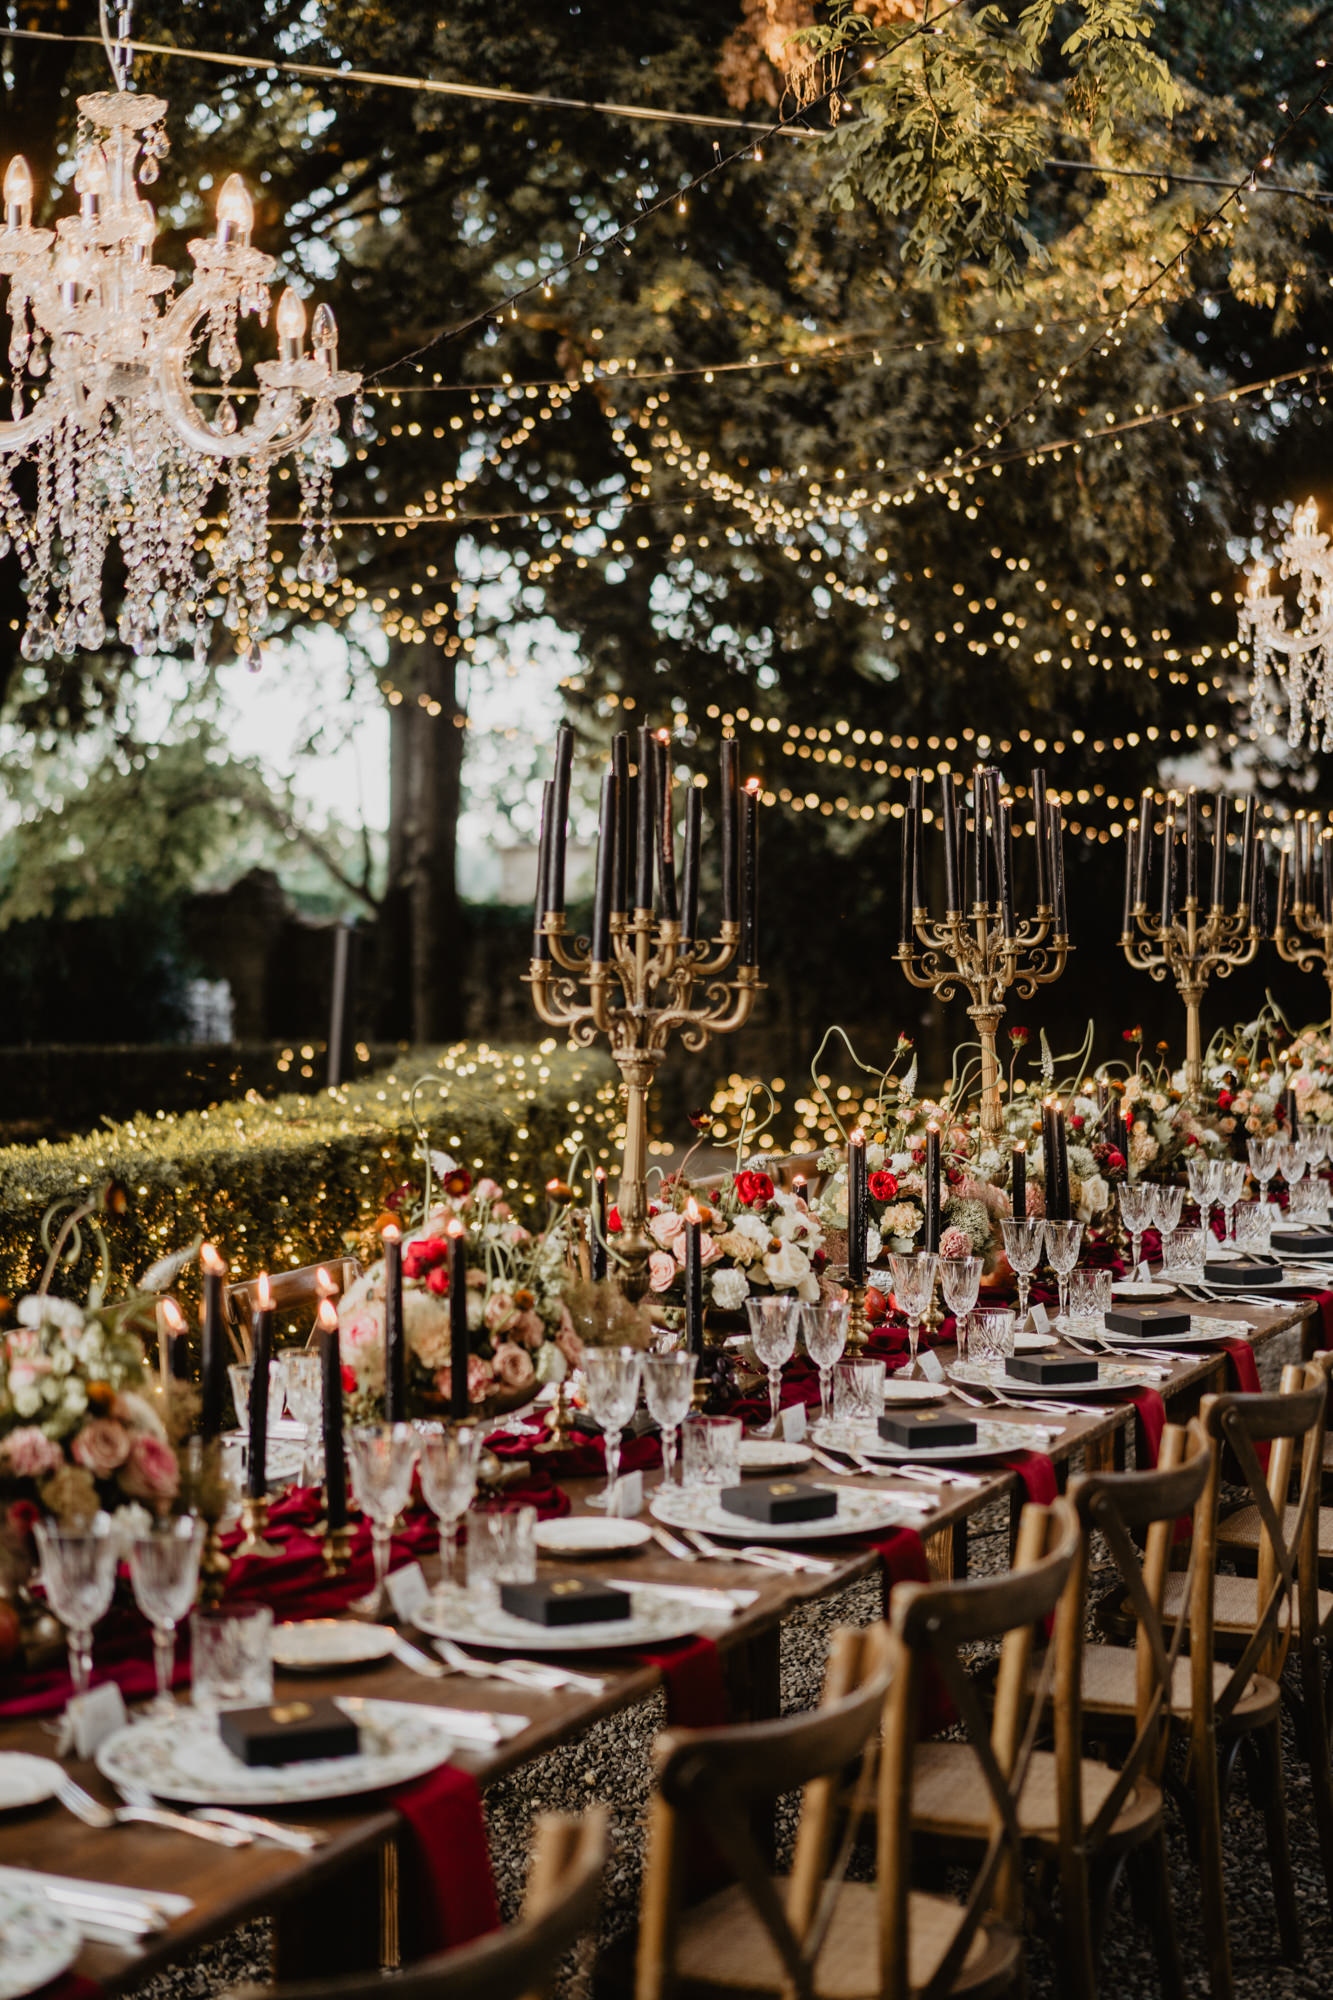 Luxury reception table with wood chairs and ivory cloth red rose runner, photo by David Bastianoni, Italy wedding photographer